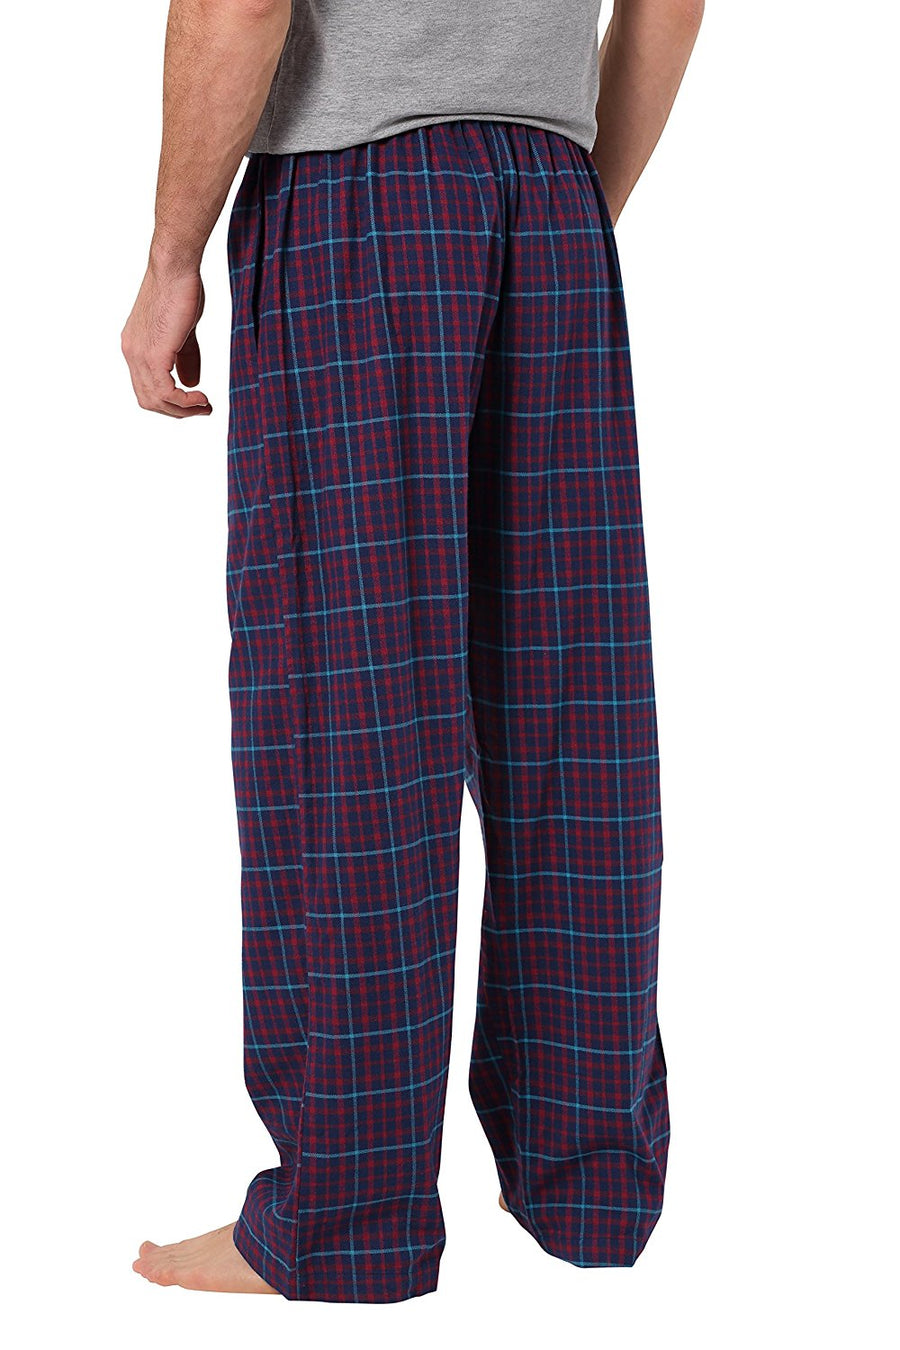 CYZ Men's 100% Cotton Super Soft Flannel Plaid Pajama Pants